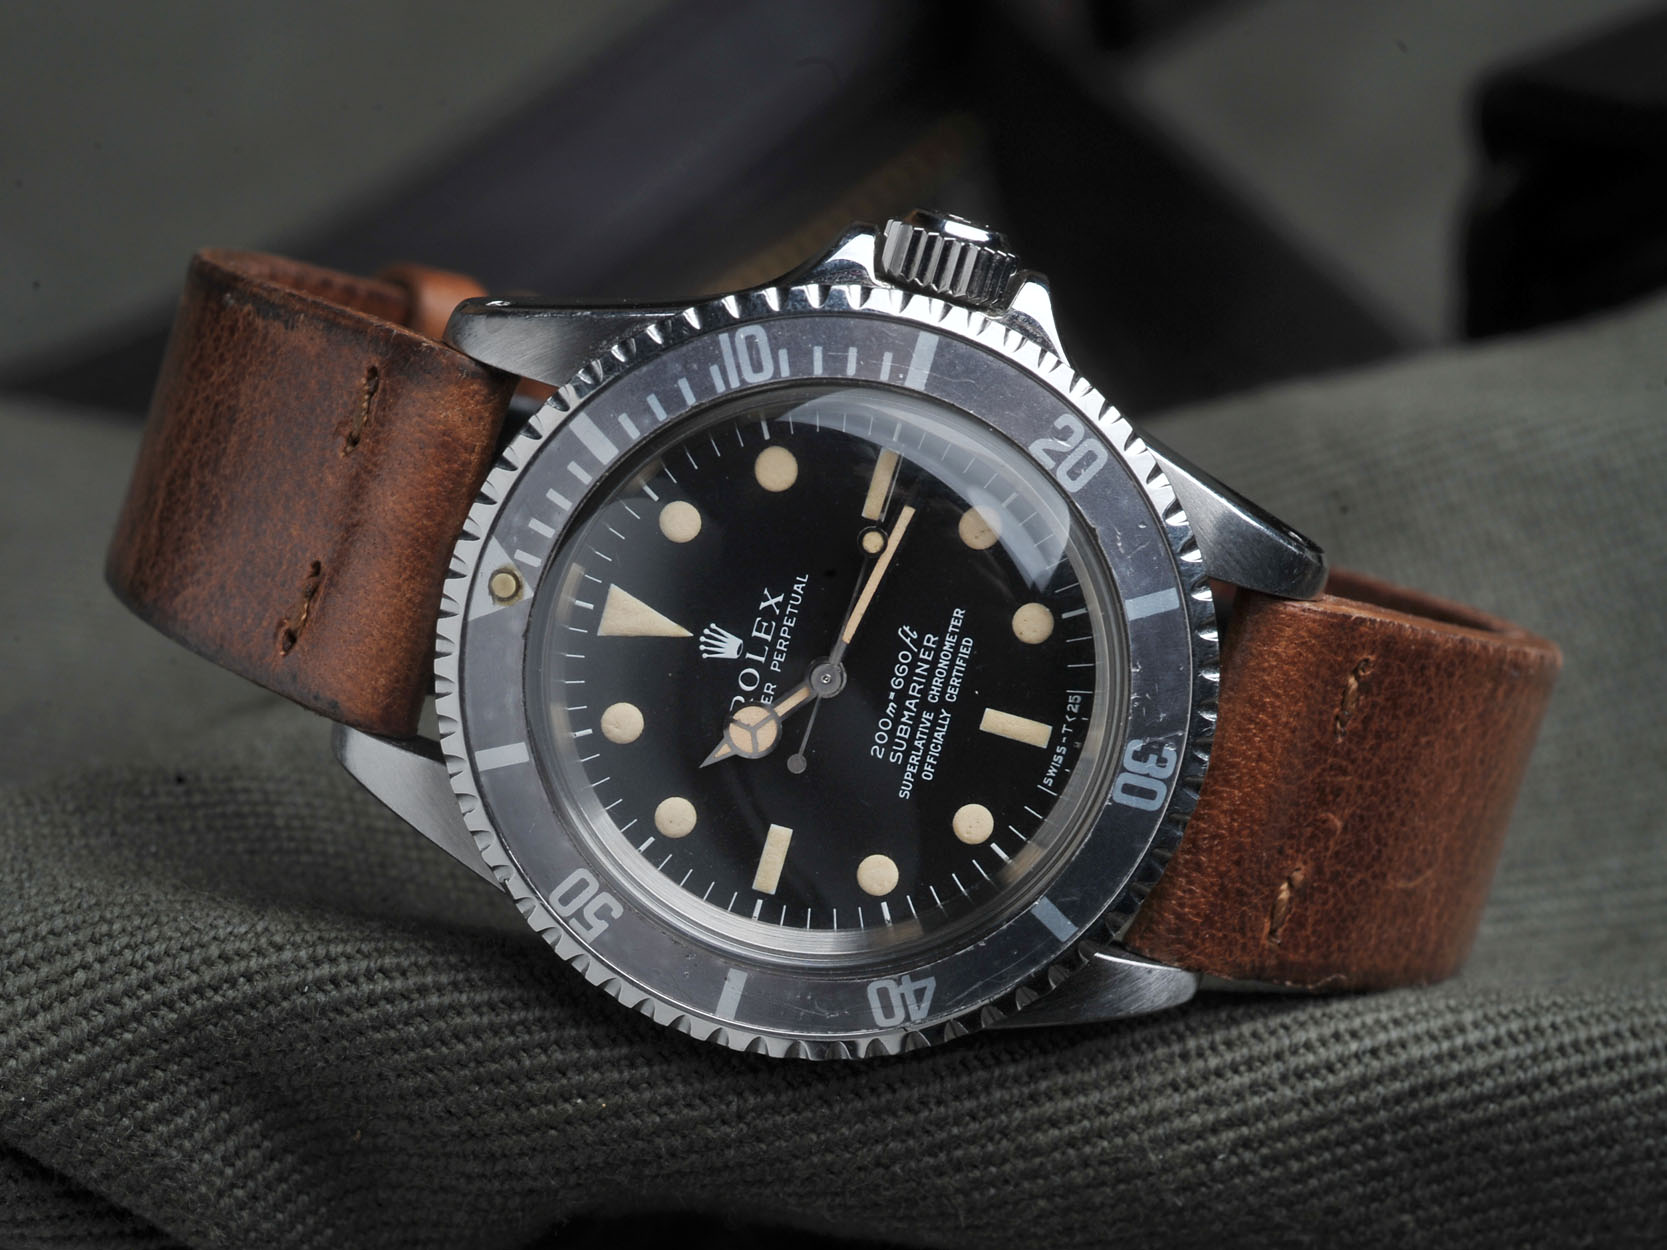 Vintage Rolex 5512 Steve Mcqueen Sold Bulang And Sons